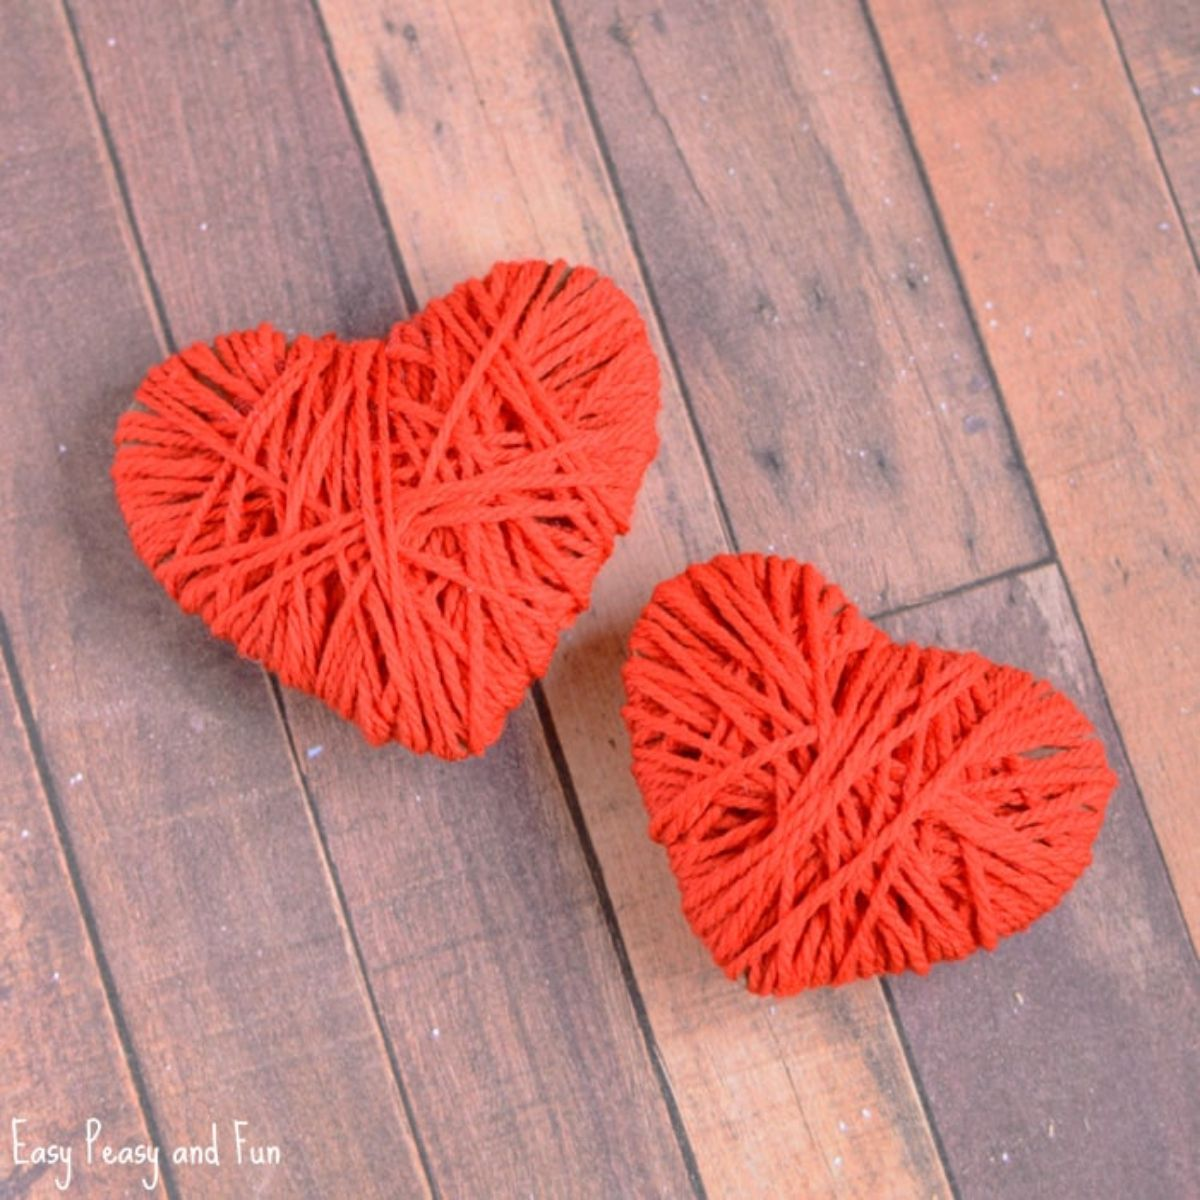 2 red yarn hearts sit on a wooden table